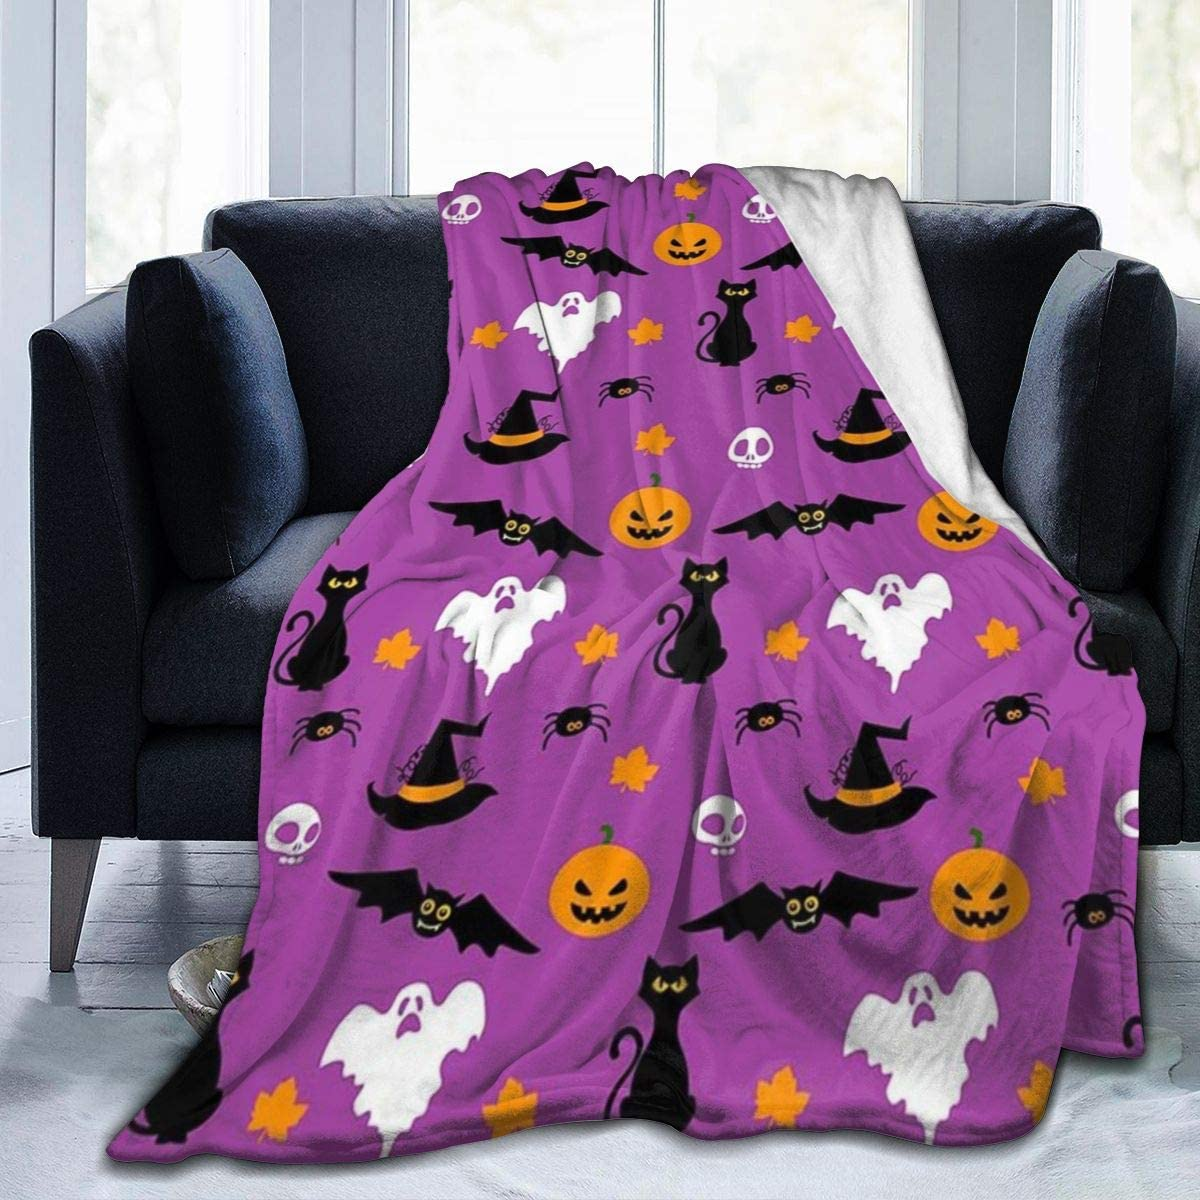 """MSGUIDE Halloween Blanket Throw Ghost Pumpkin Air Conditioner Quilt for Sofa Bed Couch Living Room Bedroom Office Travel 50""""x40"""""""